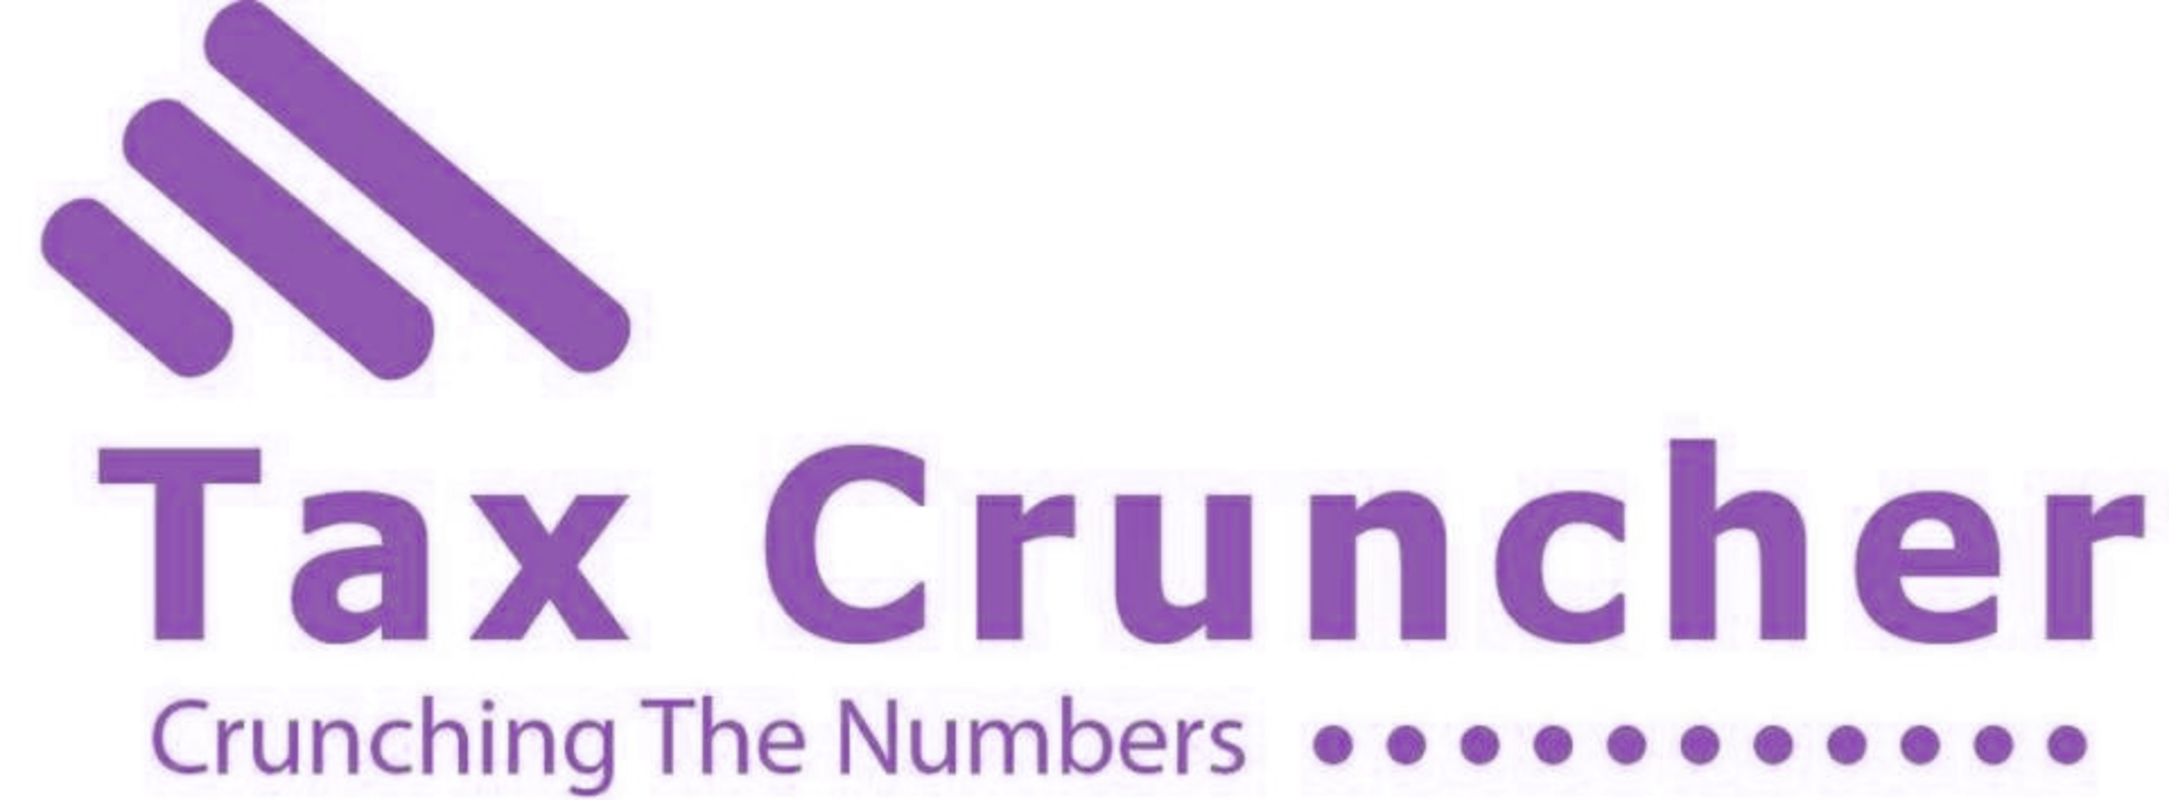 taxcruncher.co.uk - Accounting & Tax Consultants in London